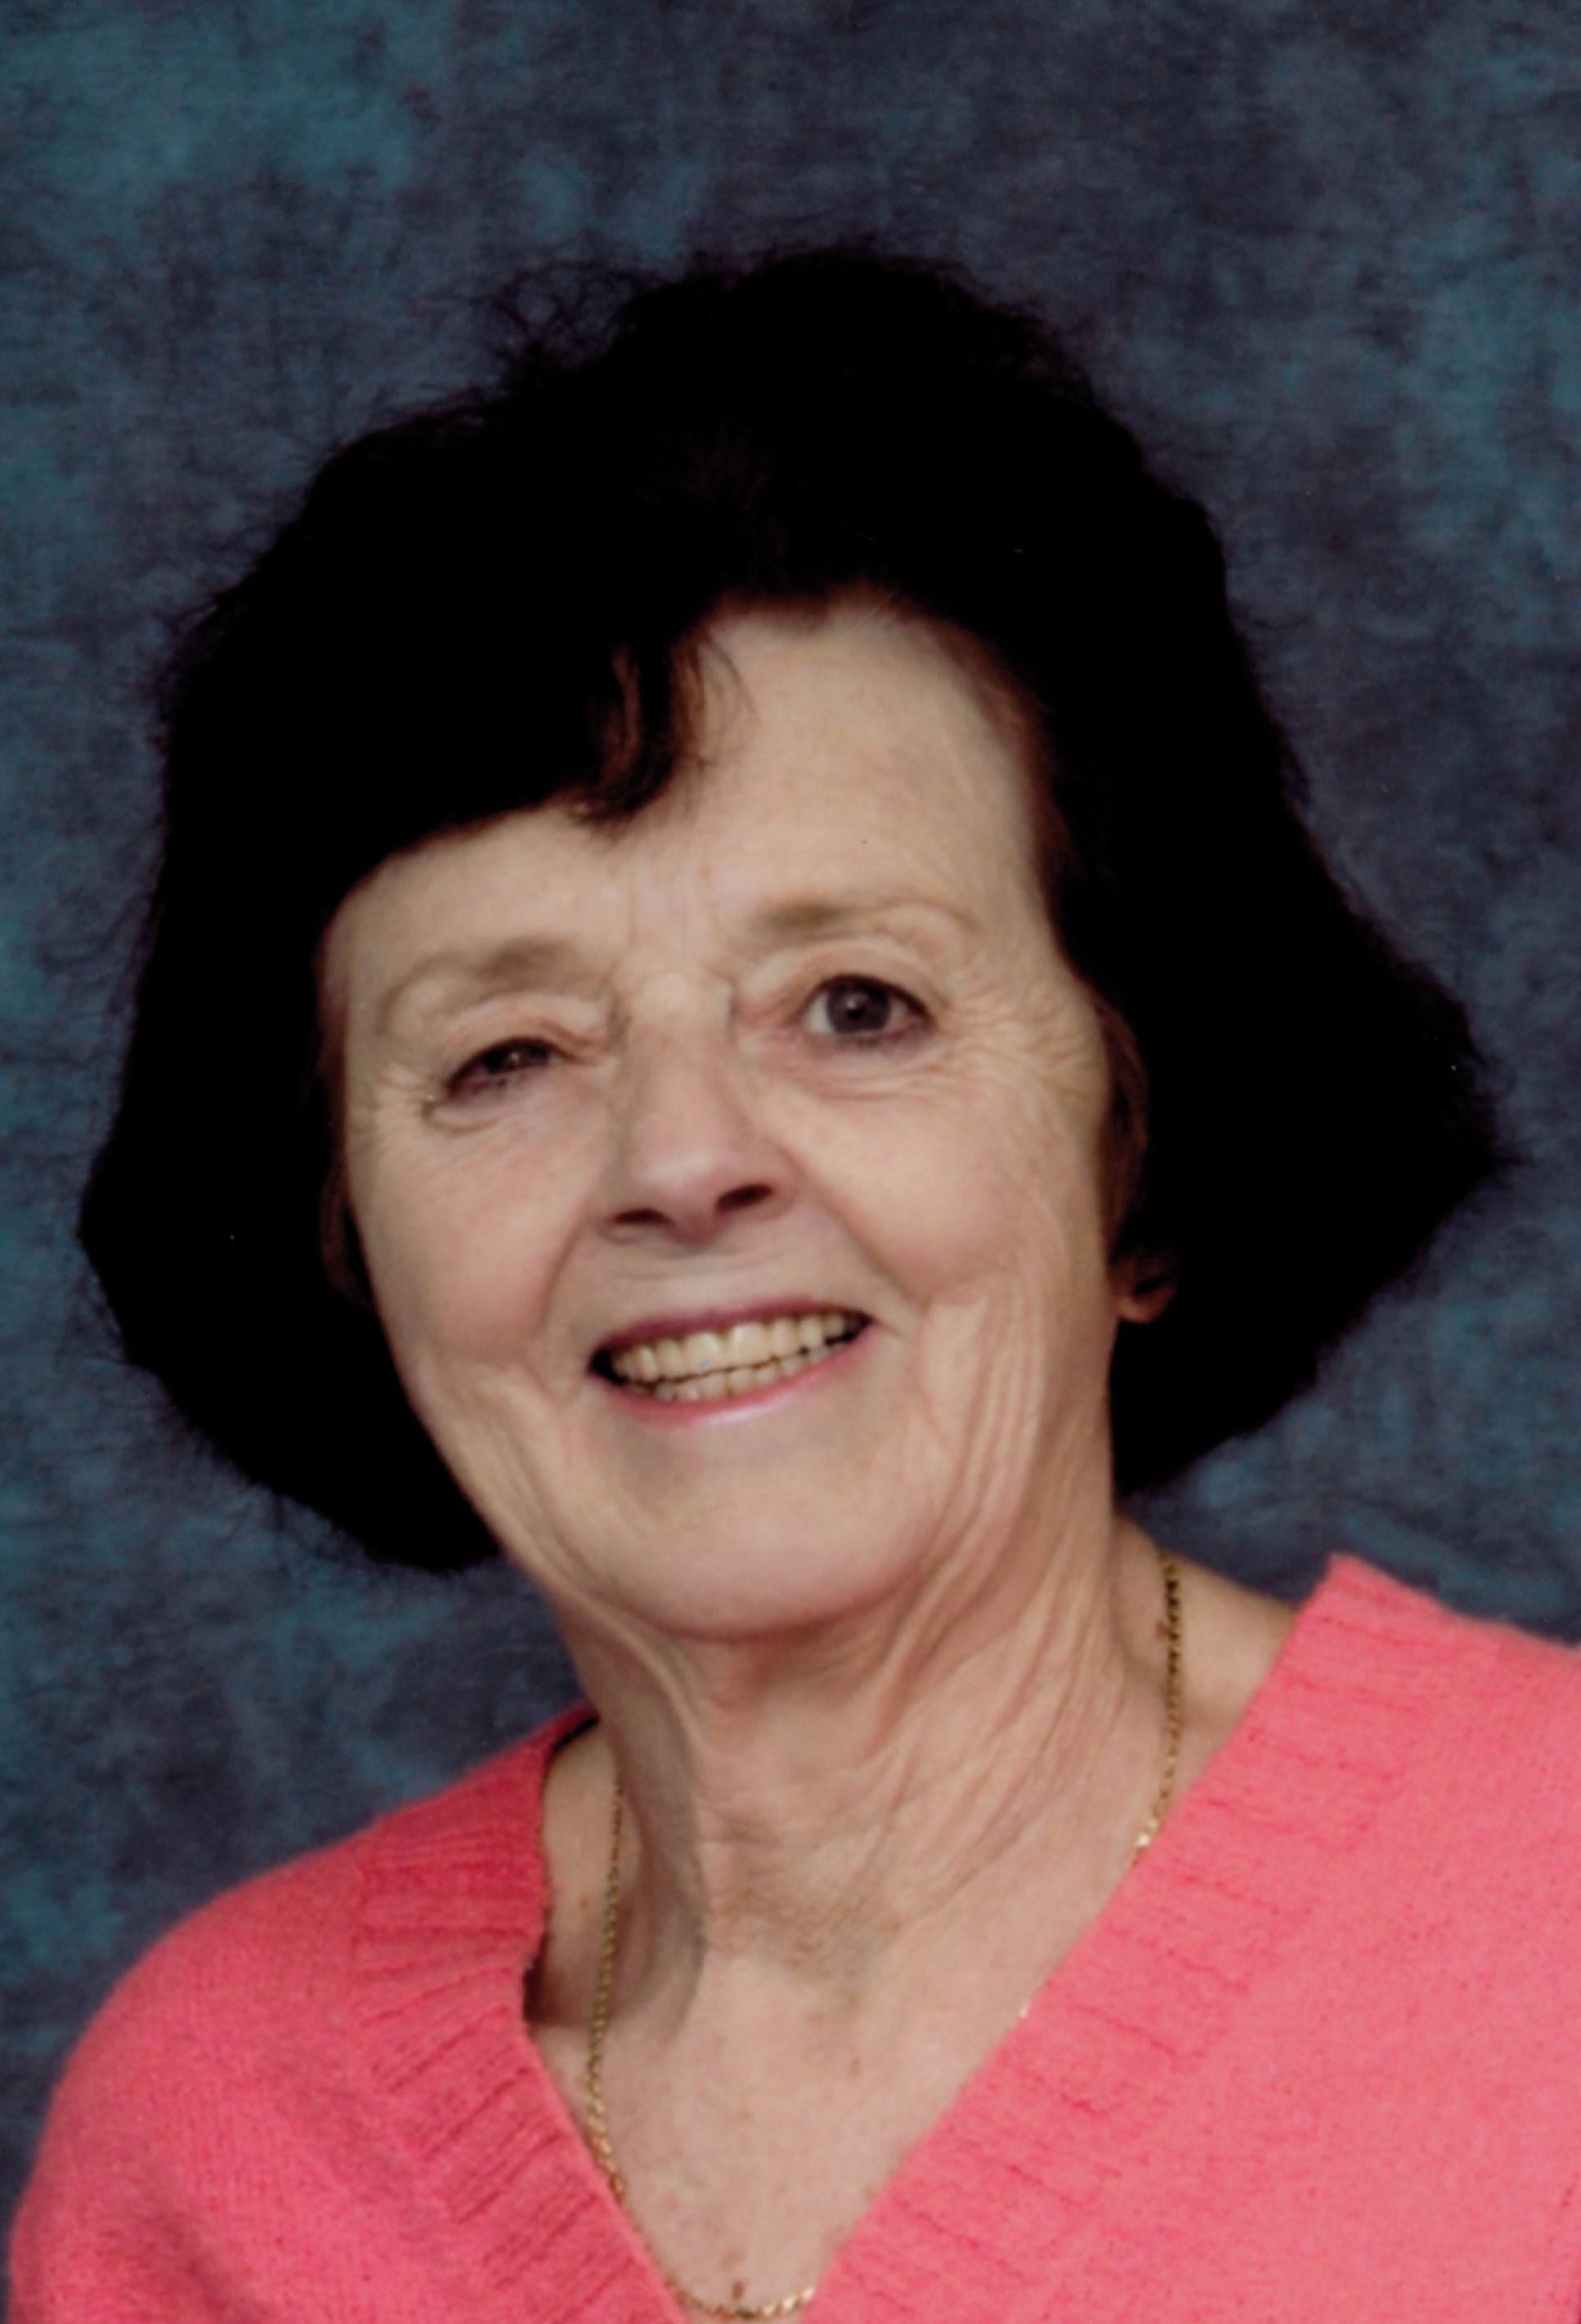 Minty Lucile Howard, 76